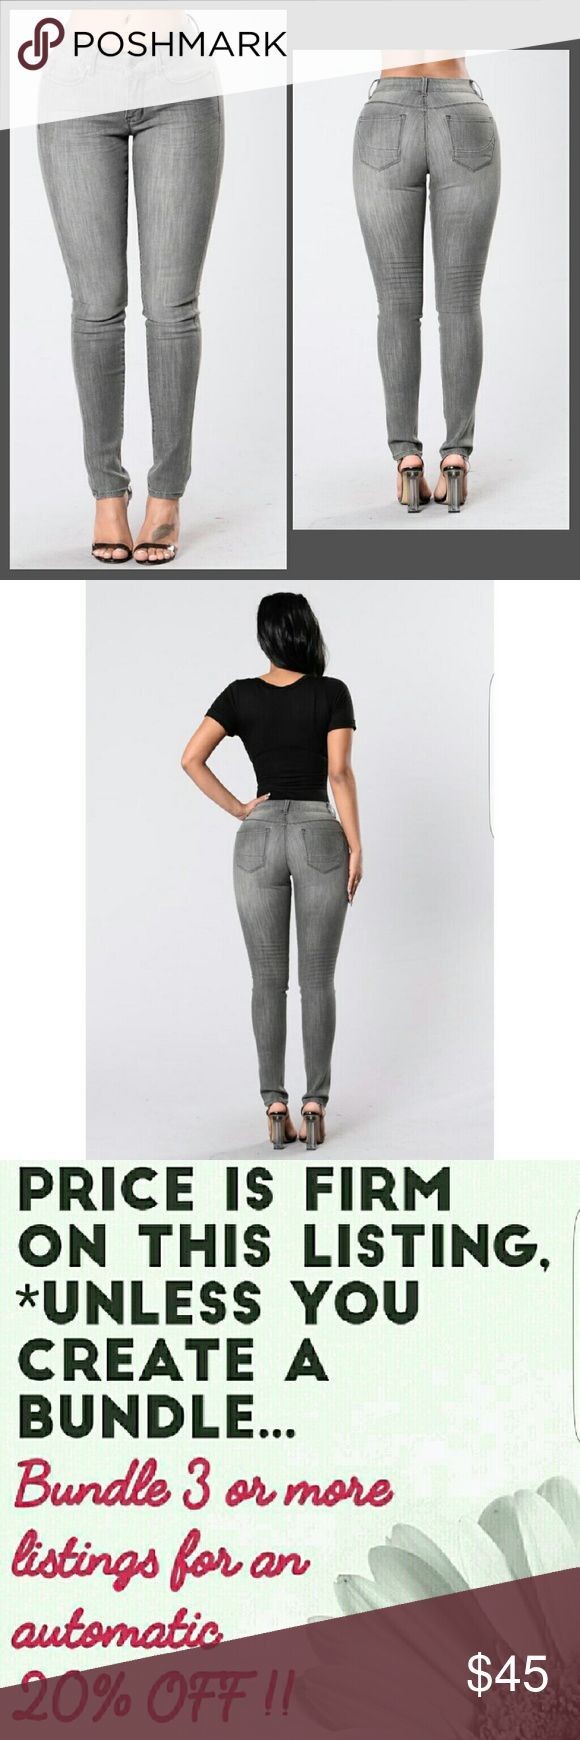 "Brand New, Gorgeous Grey Jeans. Size; 7, 9, 11 Brand New.. These premium 5 pocket mid rise jeans hug everywhere! Curve contouring. The awesome stretch makes them just about ""feel like yoga pants""!  Color; Grey.  Material; 77% Cotton, 8% Polyester, 13% Viscose, 2% Spandex.  Sizes; 7, 9, 11. Ladi Lyke Jeans Straight Leg"